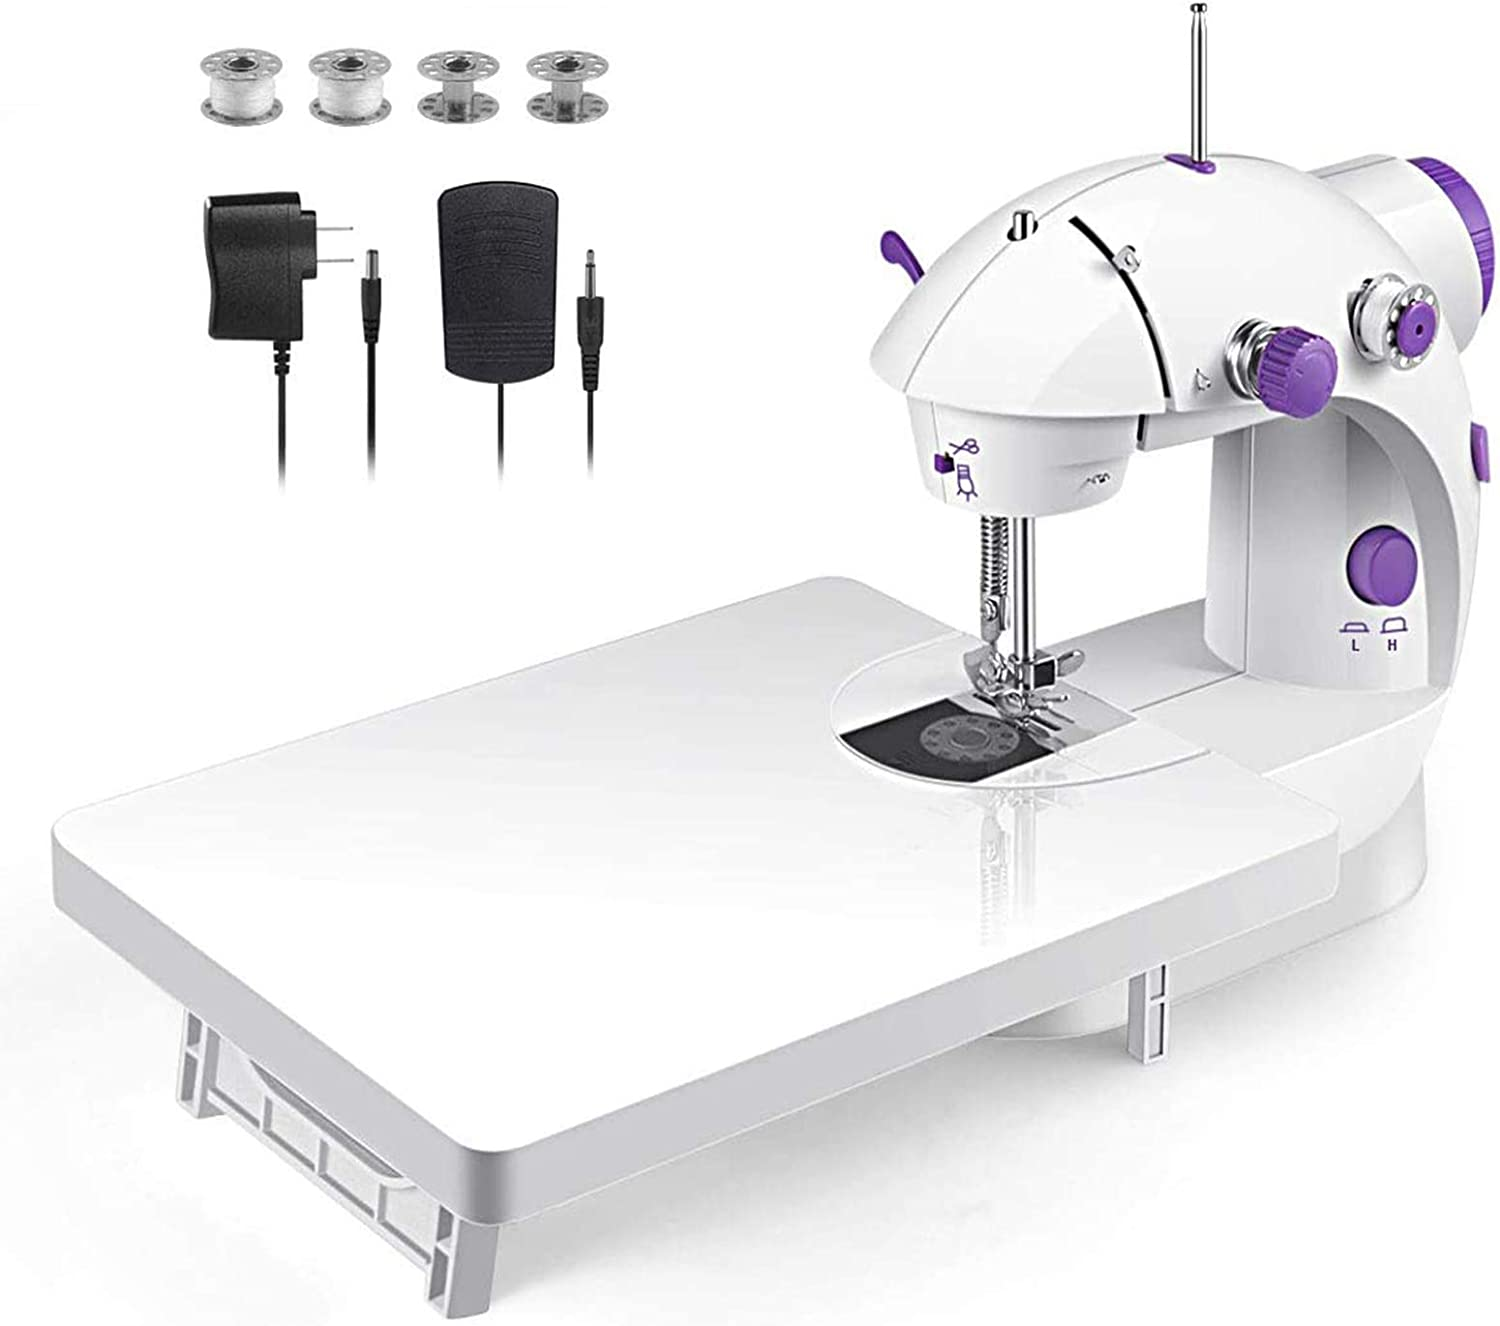 Mini Sewing Machine, Upgraded Model in 2020, Portable Multi-Function Assistant at Home with Foot Pedal 4 Coils (Lea2) and Extension Table (White), Also Used for Travel